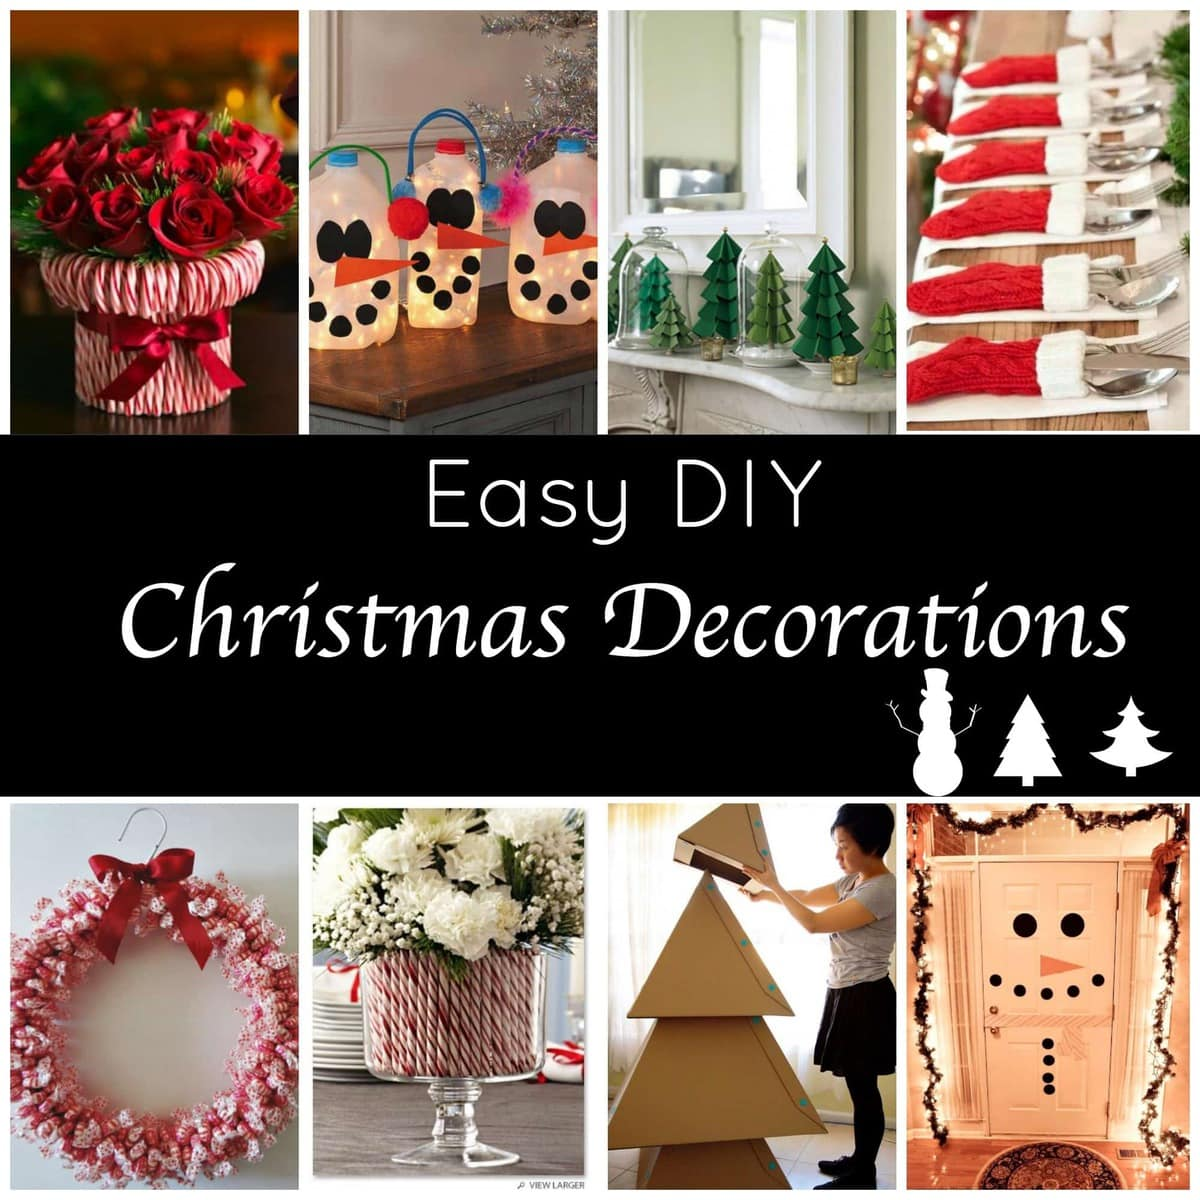 diy christmas decorations for classroom images. Black Bedroom Furniture Sets. Home Design Ideas